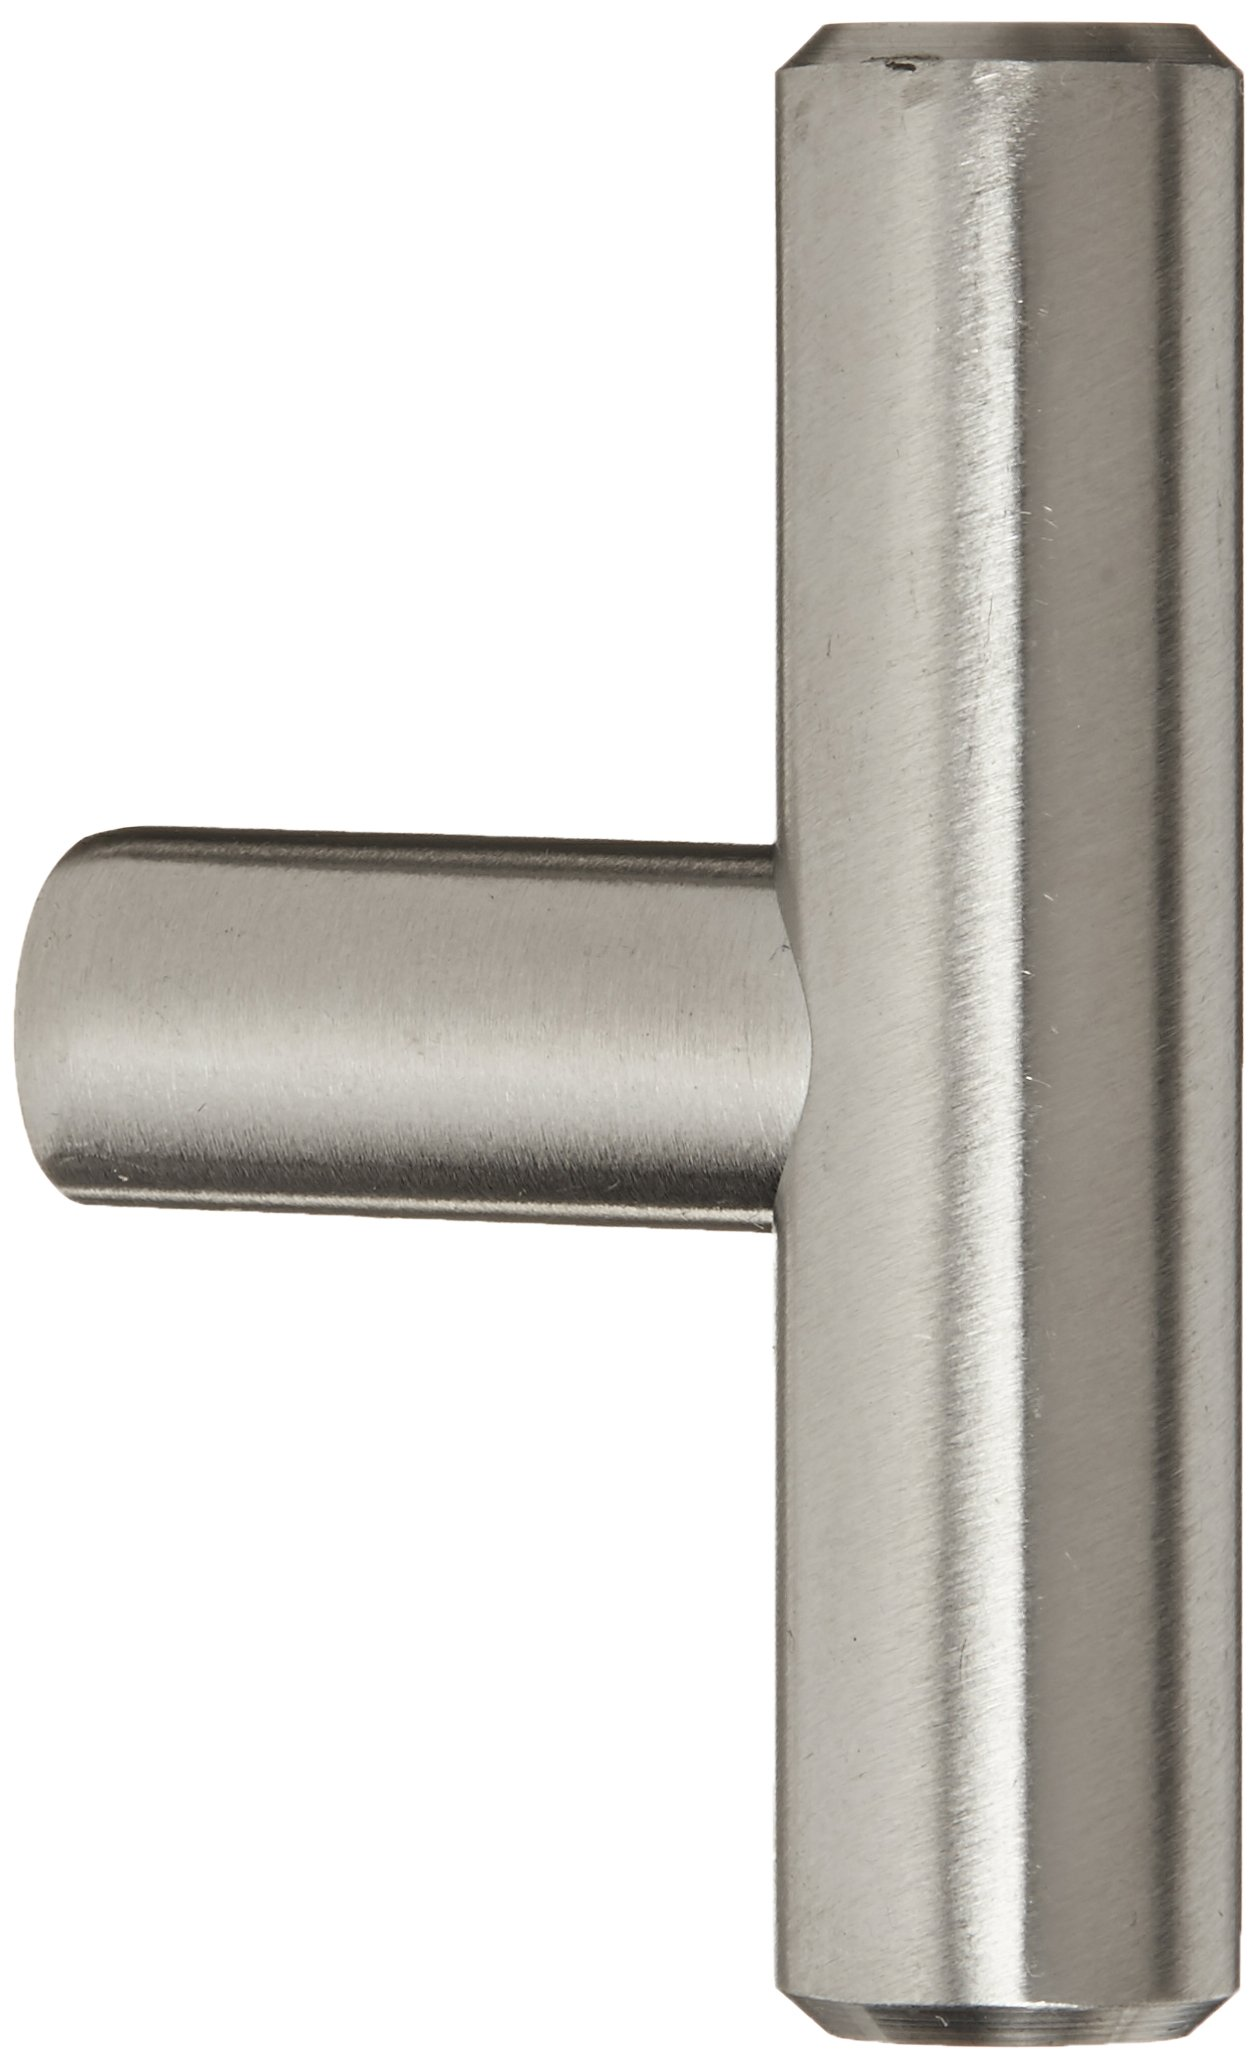 Pandora SOLID Stainless Steel Bar Pull Handle For Drawer Kitchen Cabinet Hardware 2-inch T Pull - 25 PACK